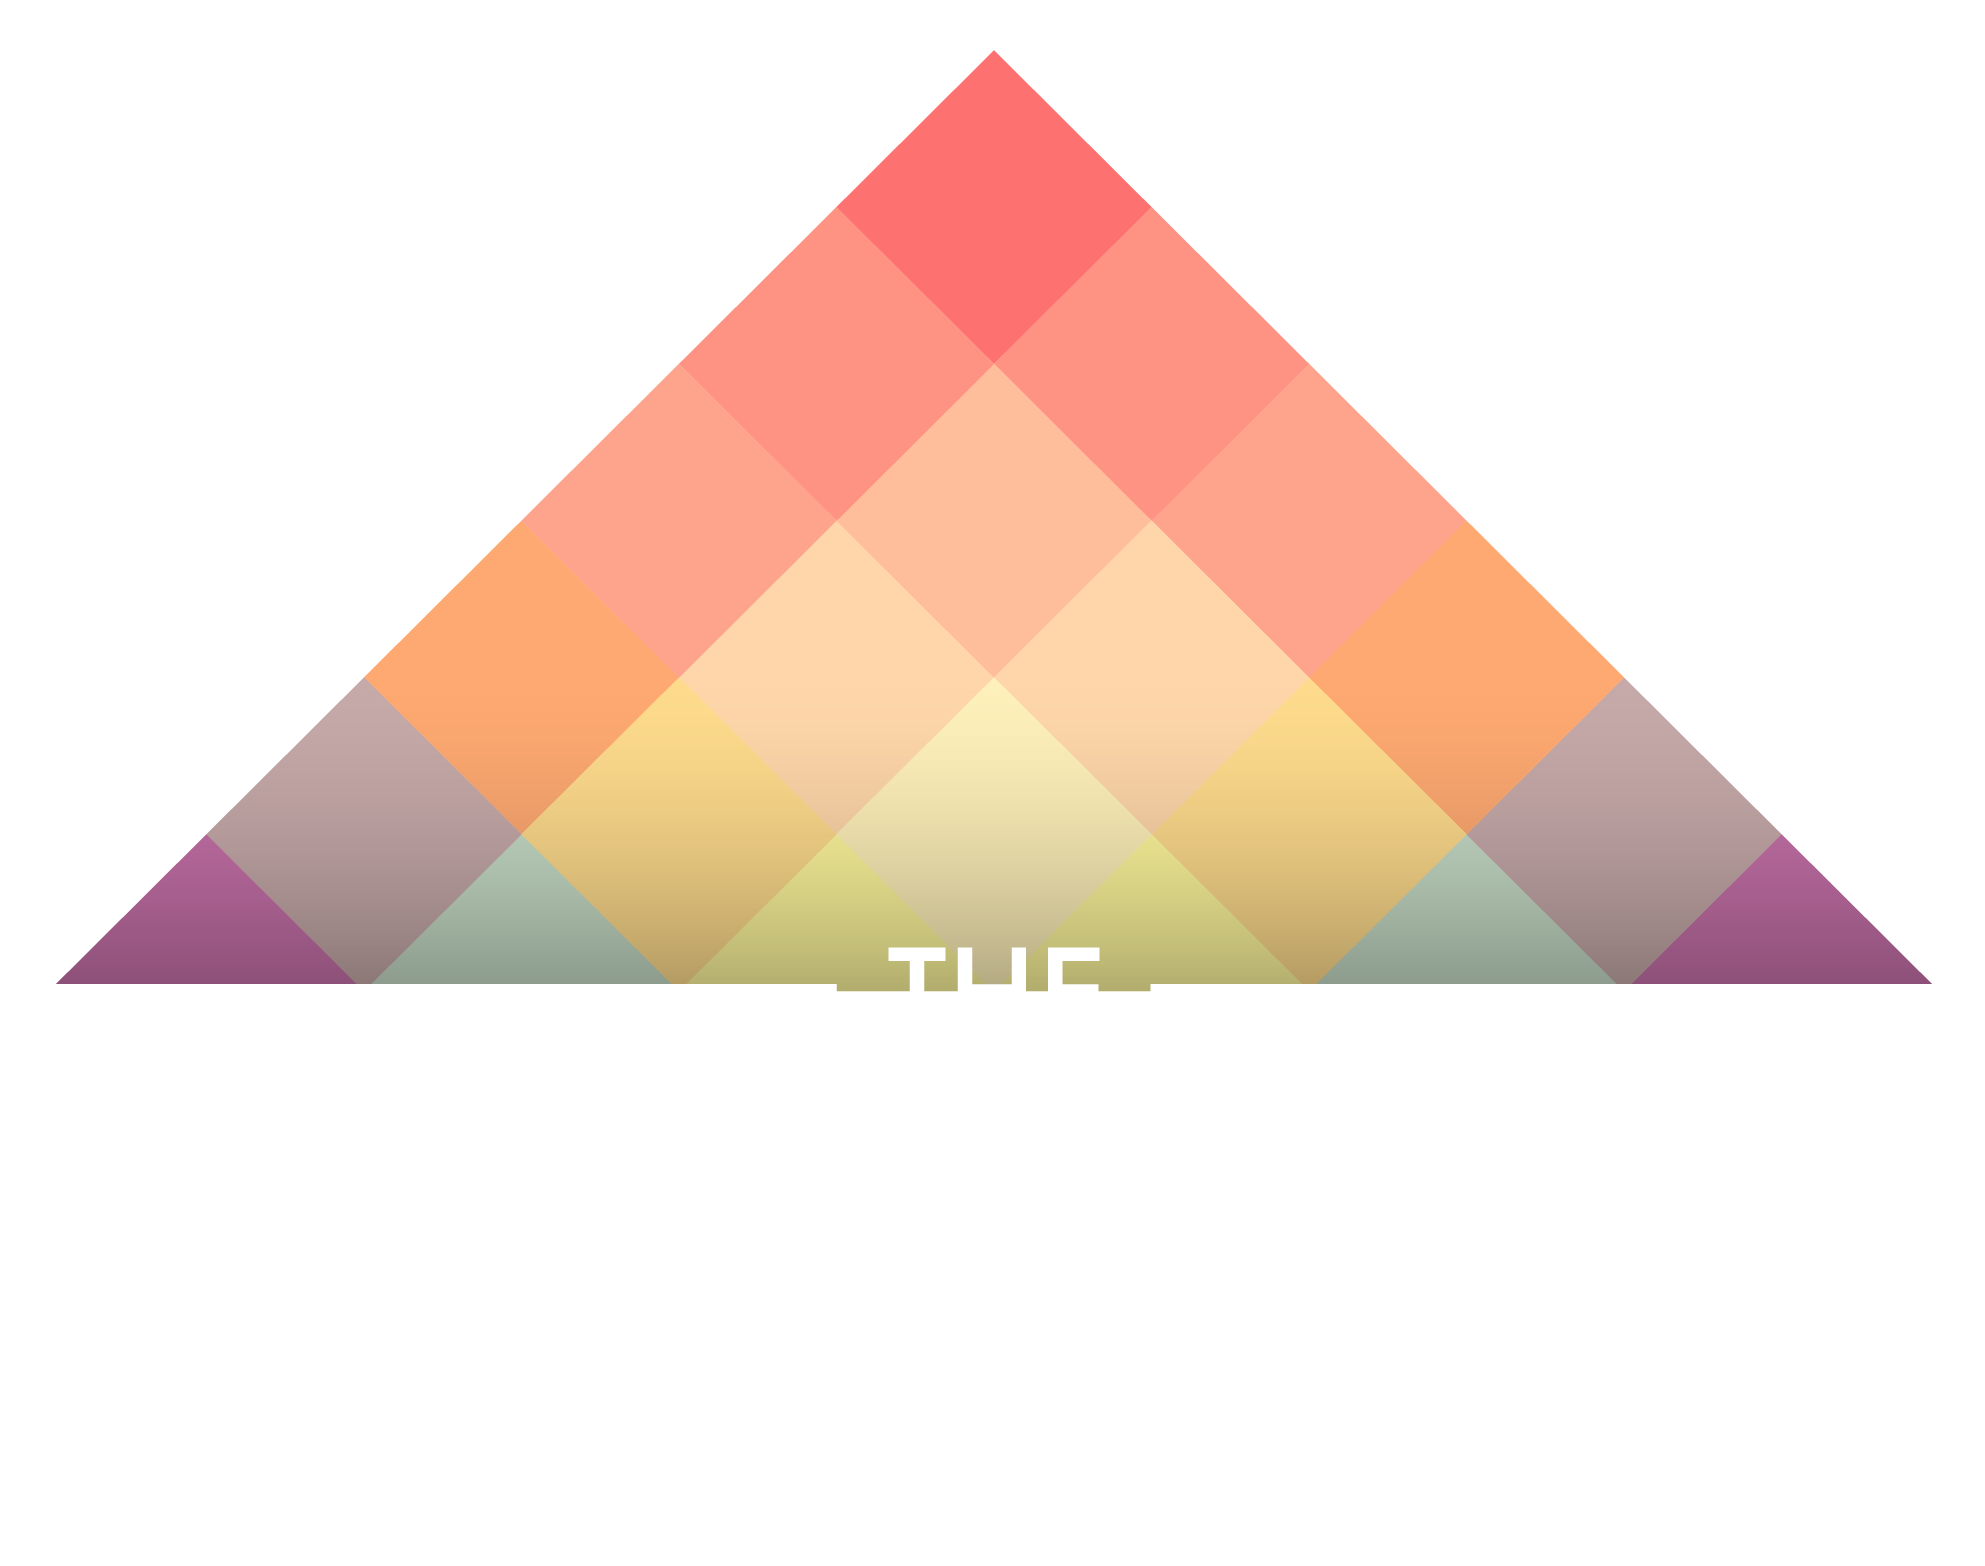 INTERNET EARNERS SUMMIT